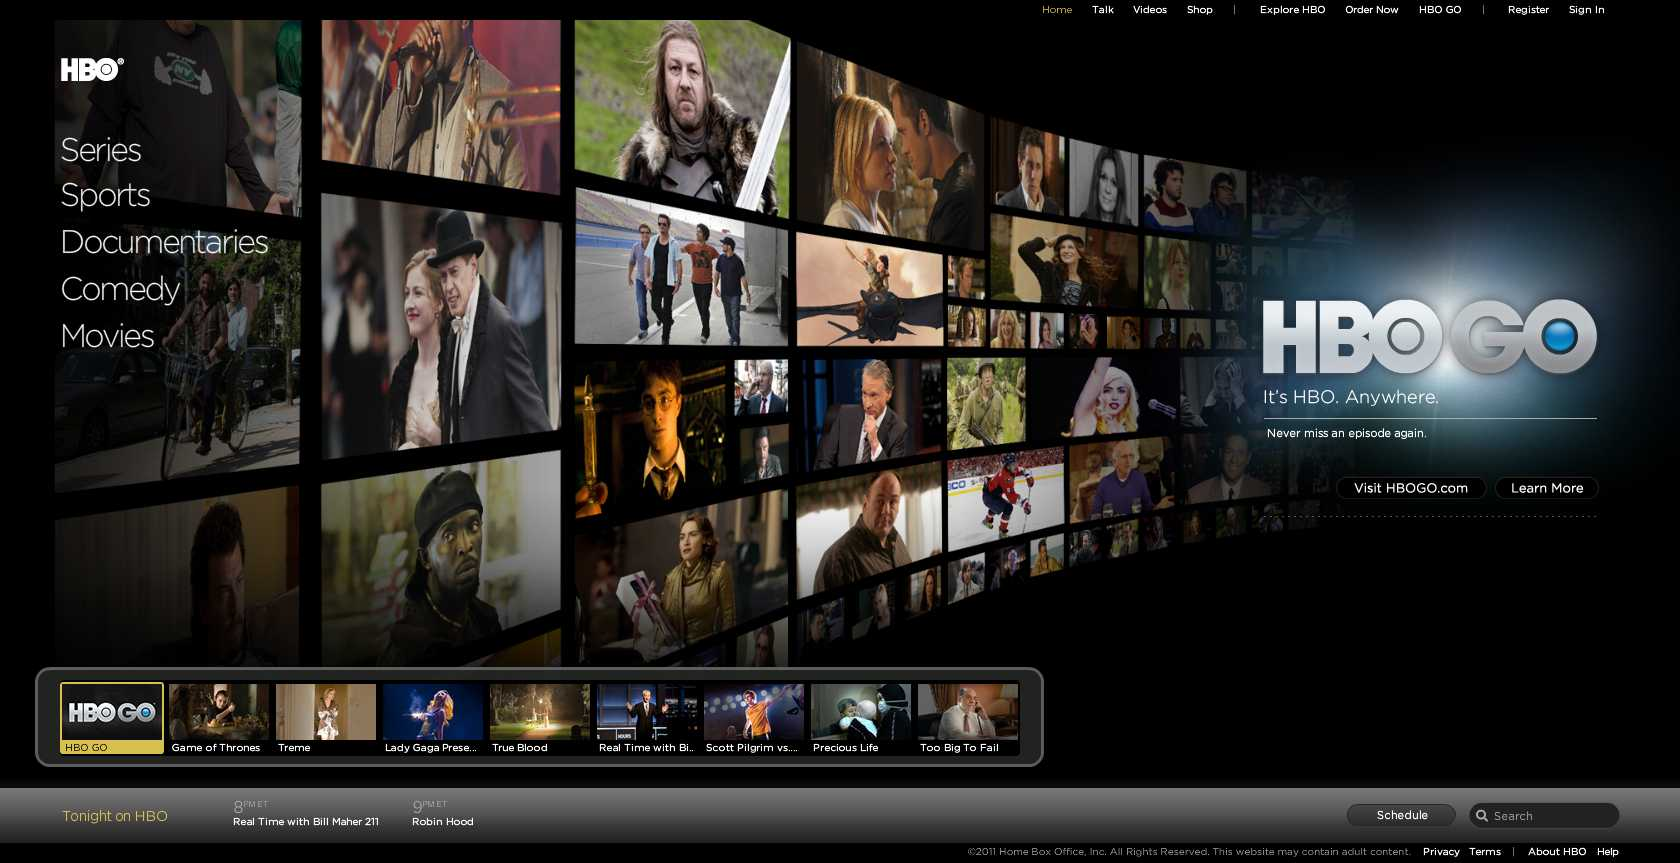 Is Hbo S Standalone On Demand Video Service Doa